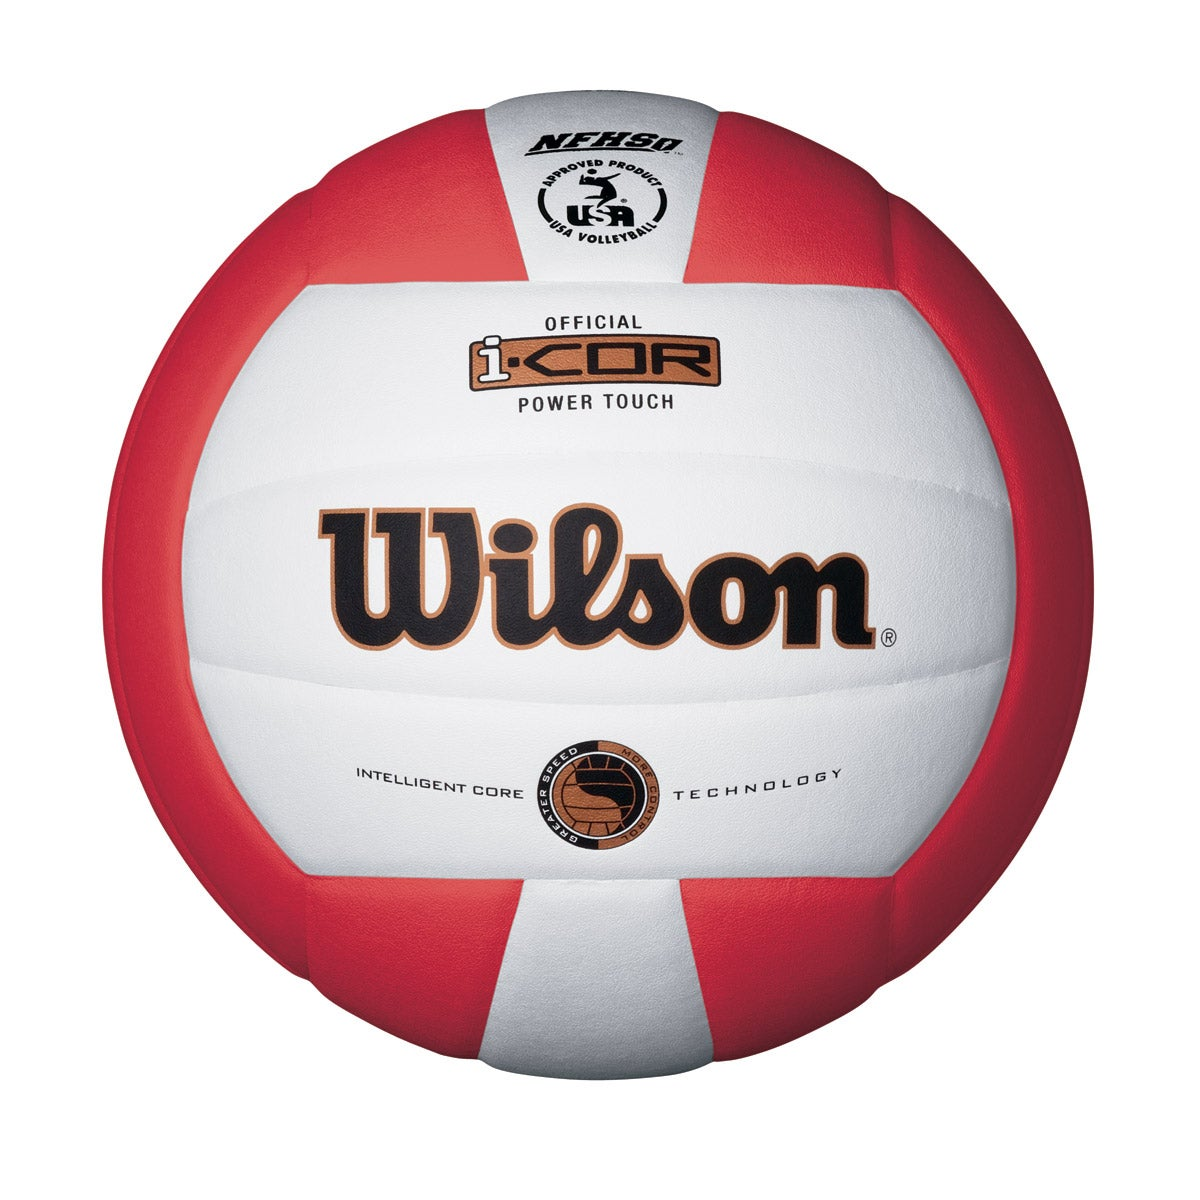 I-COR Power Touch Volleyball